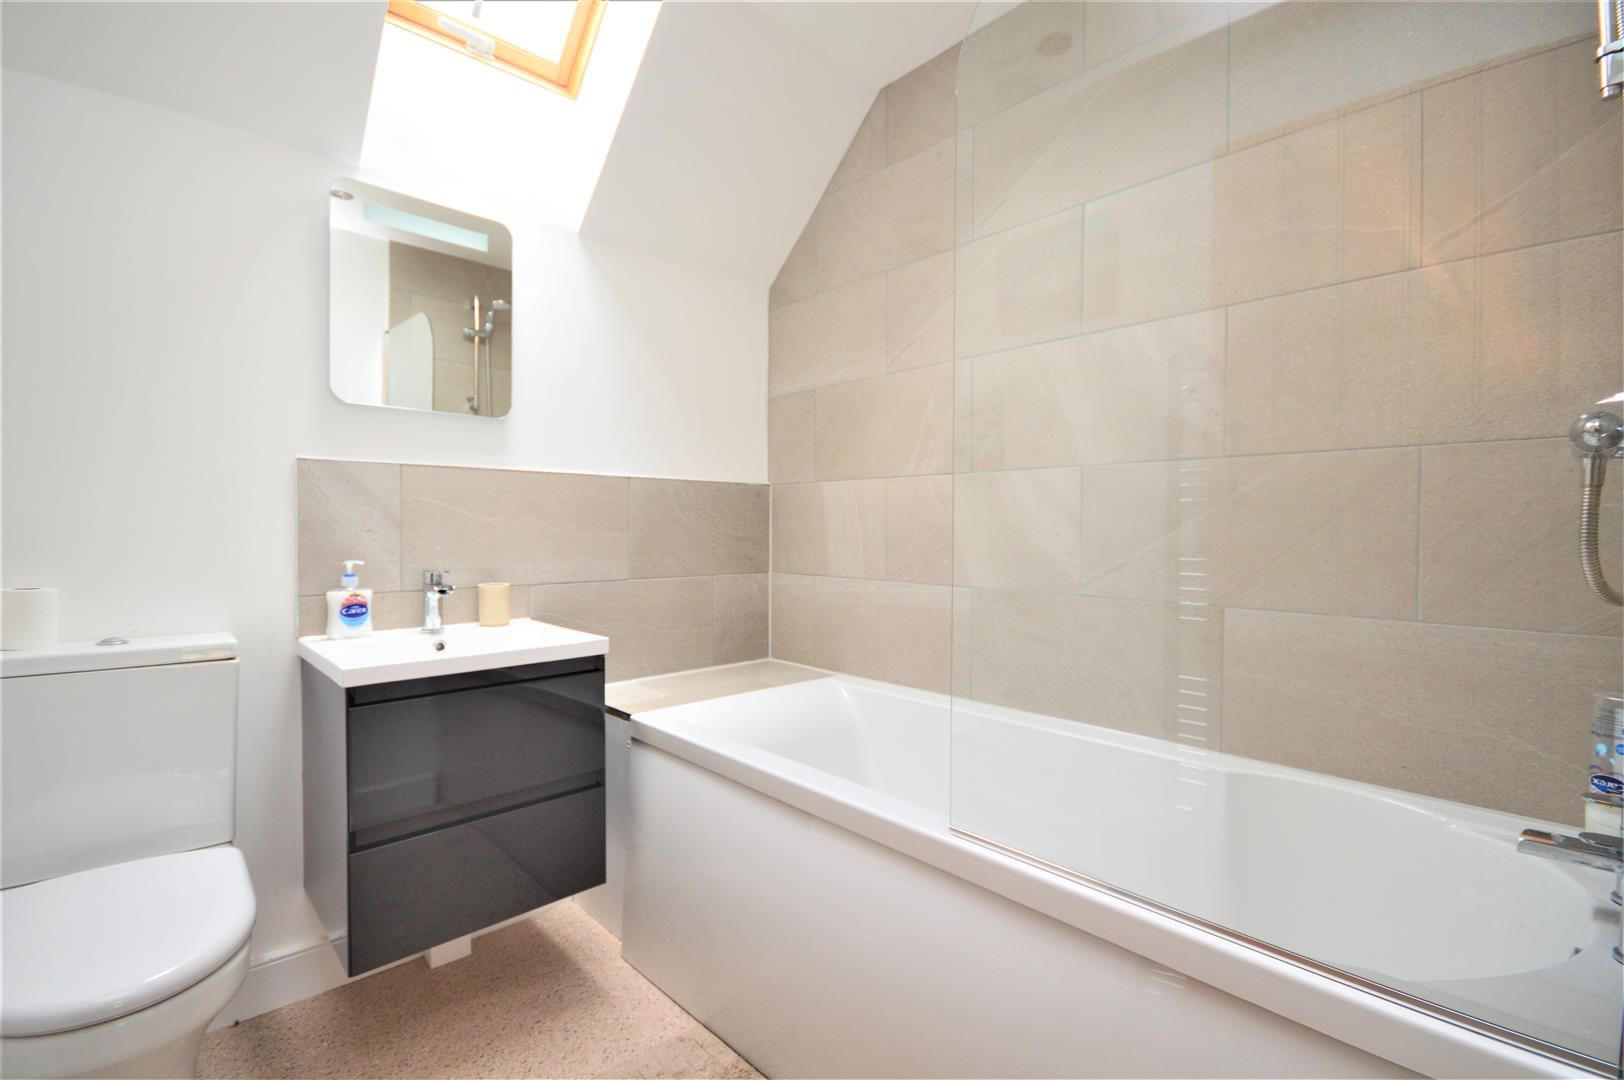 4 bed detached for sale in Marden 19